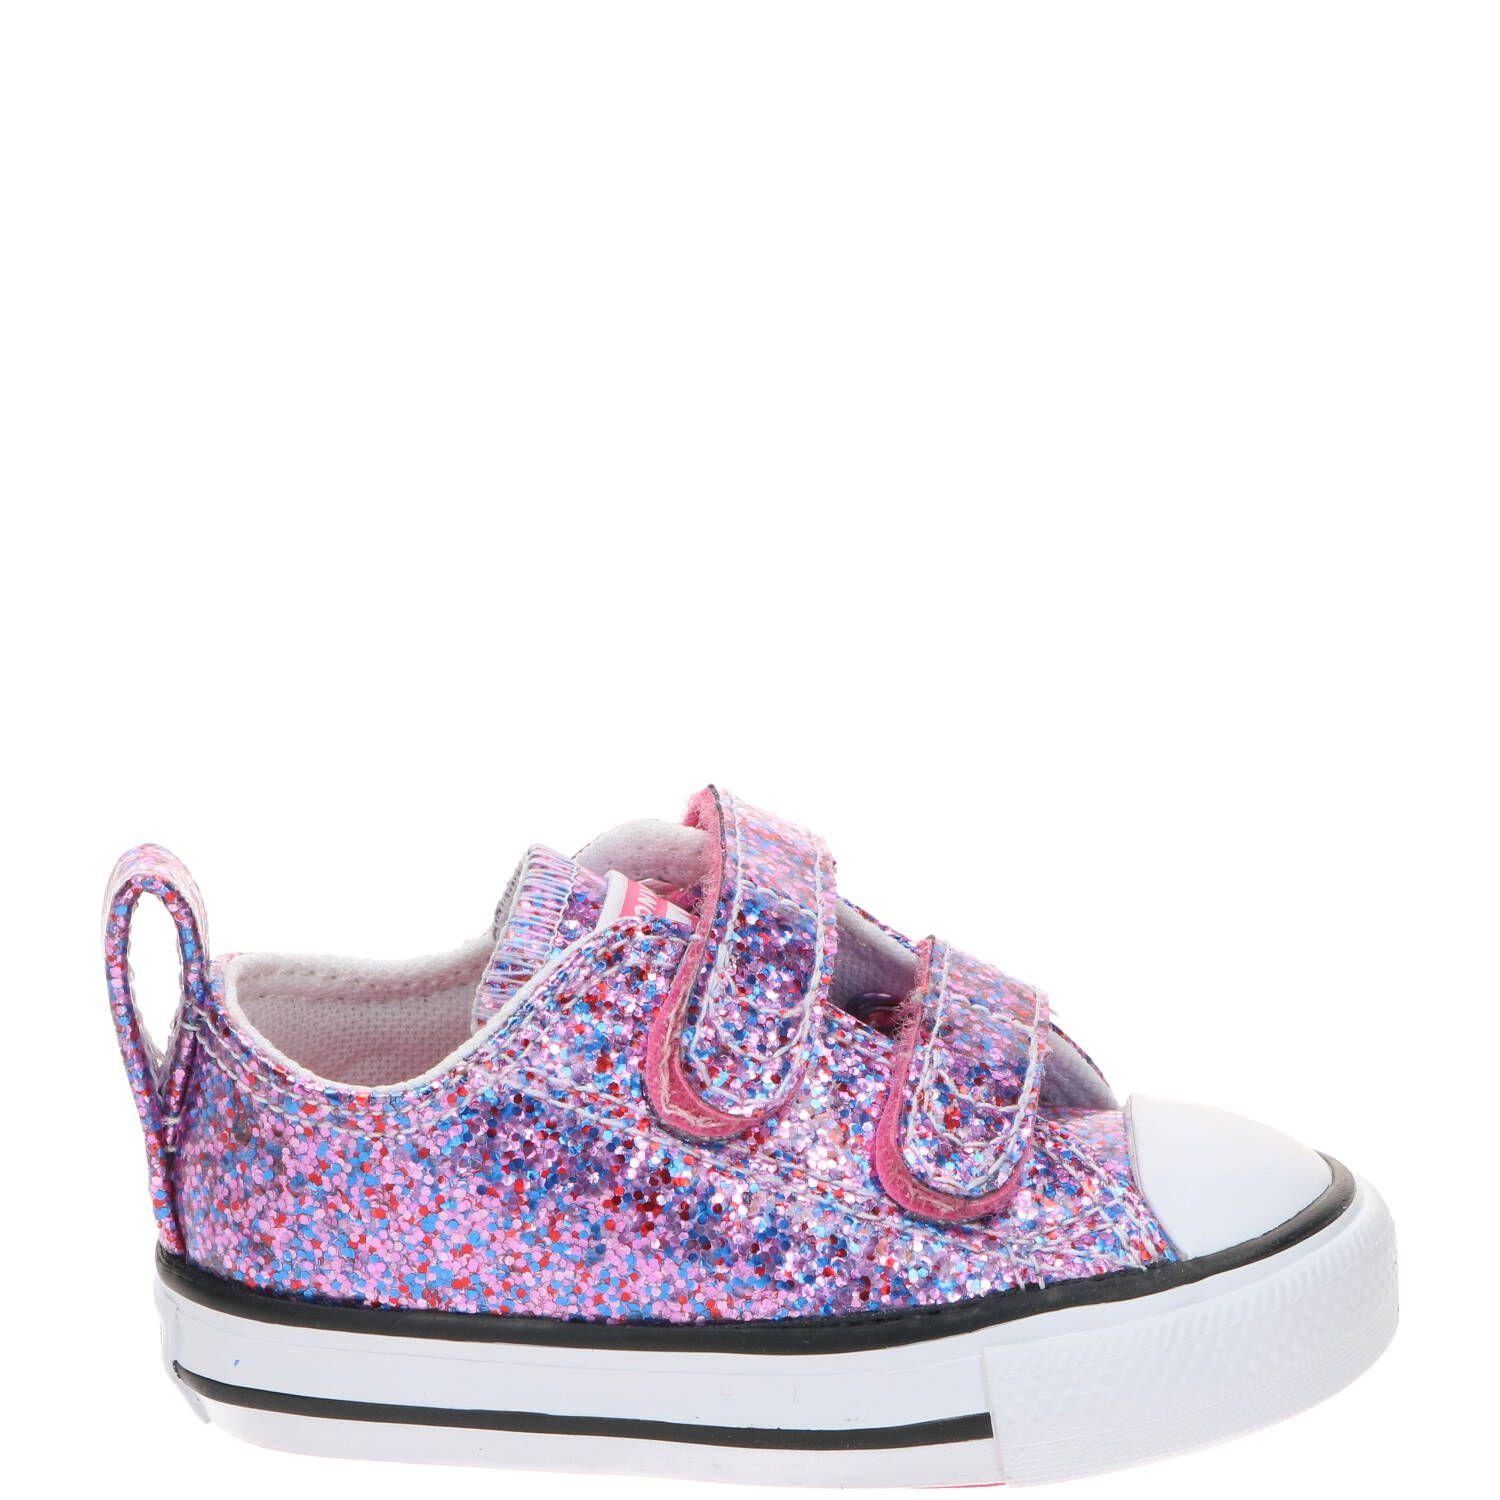 Converse Chuck Taylor All Star 2V Coated Glitter Ox sneaker, Sneakers,